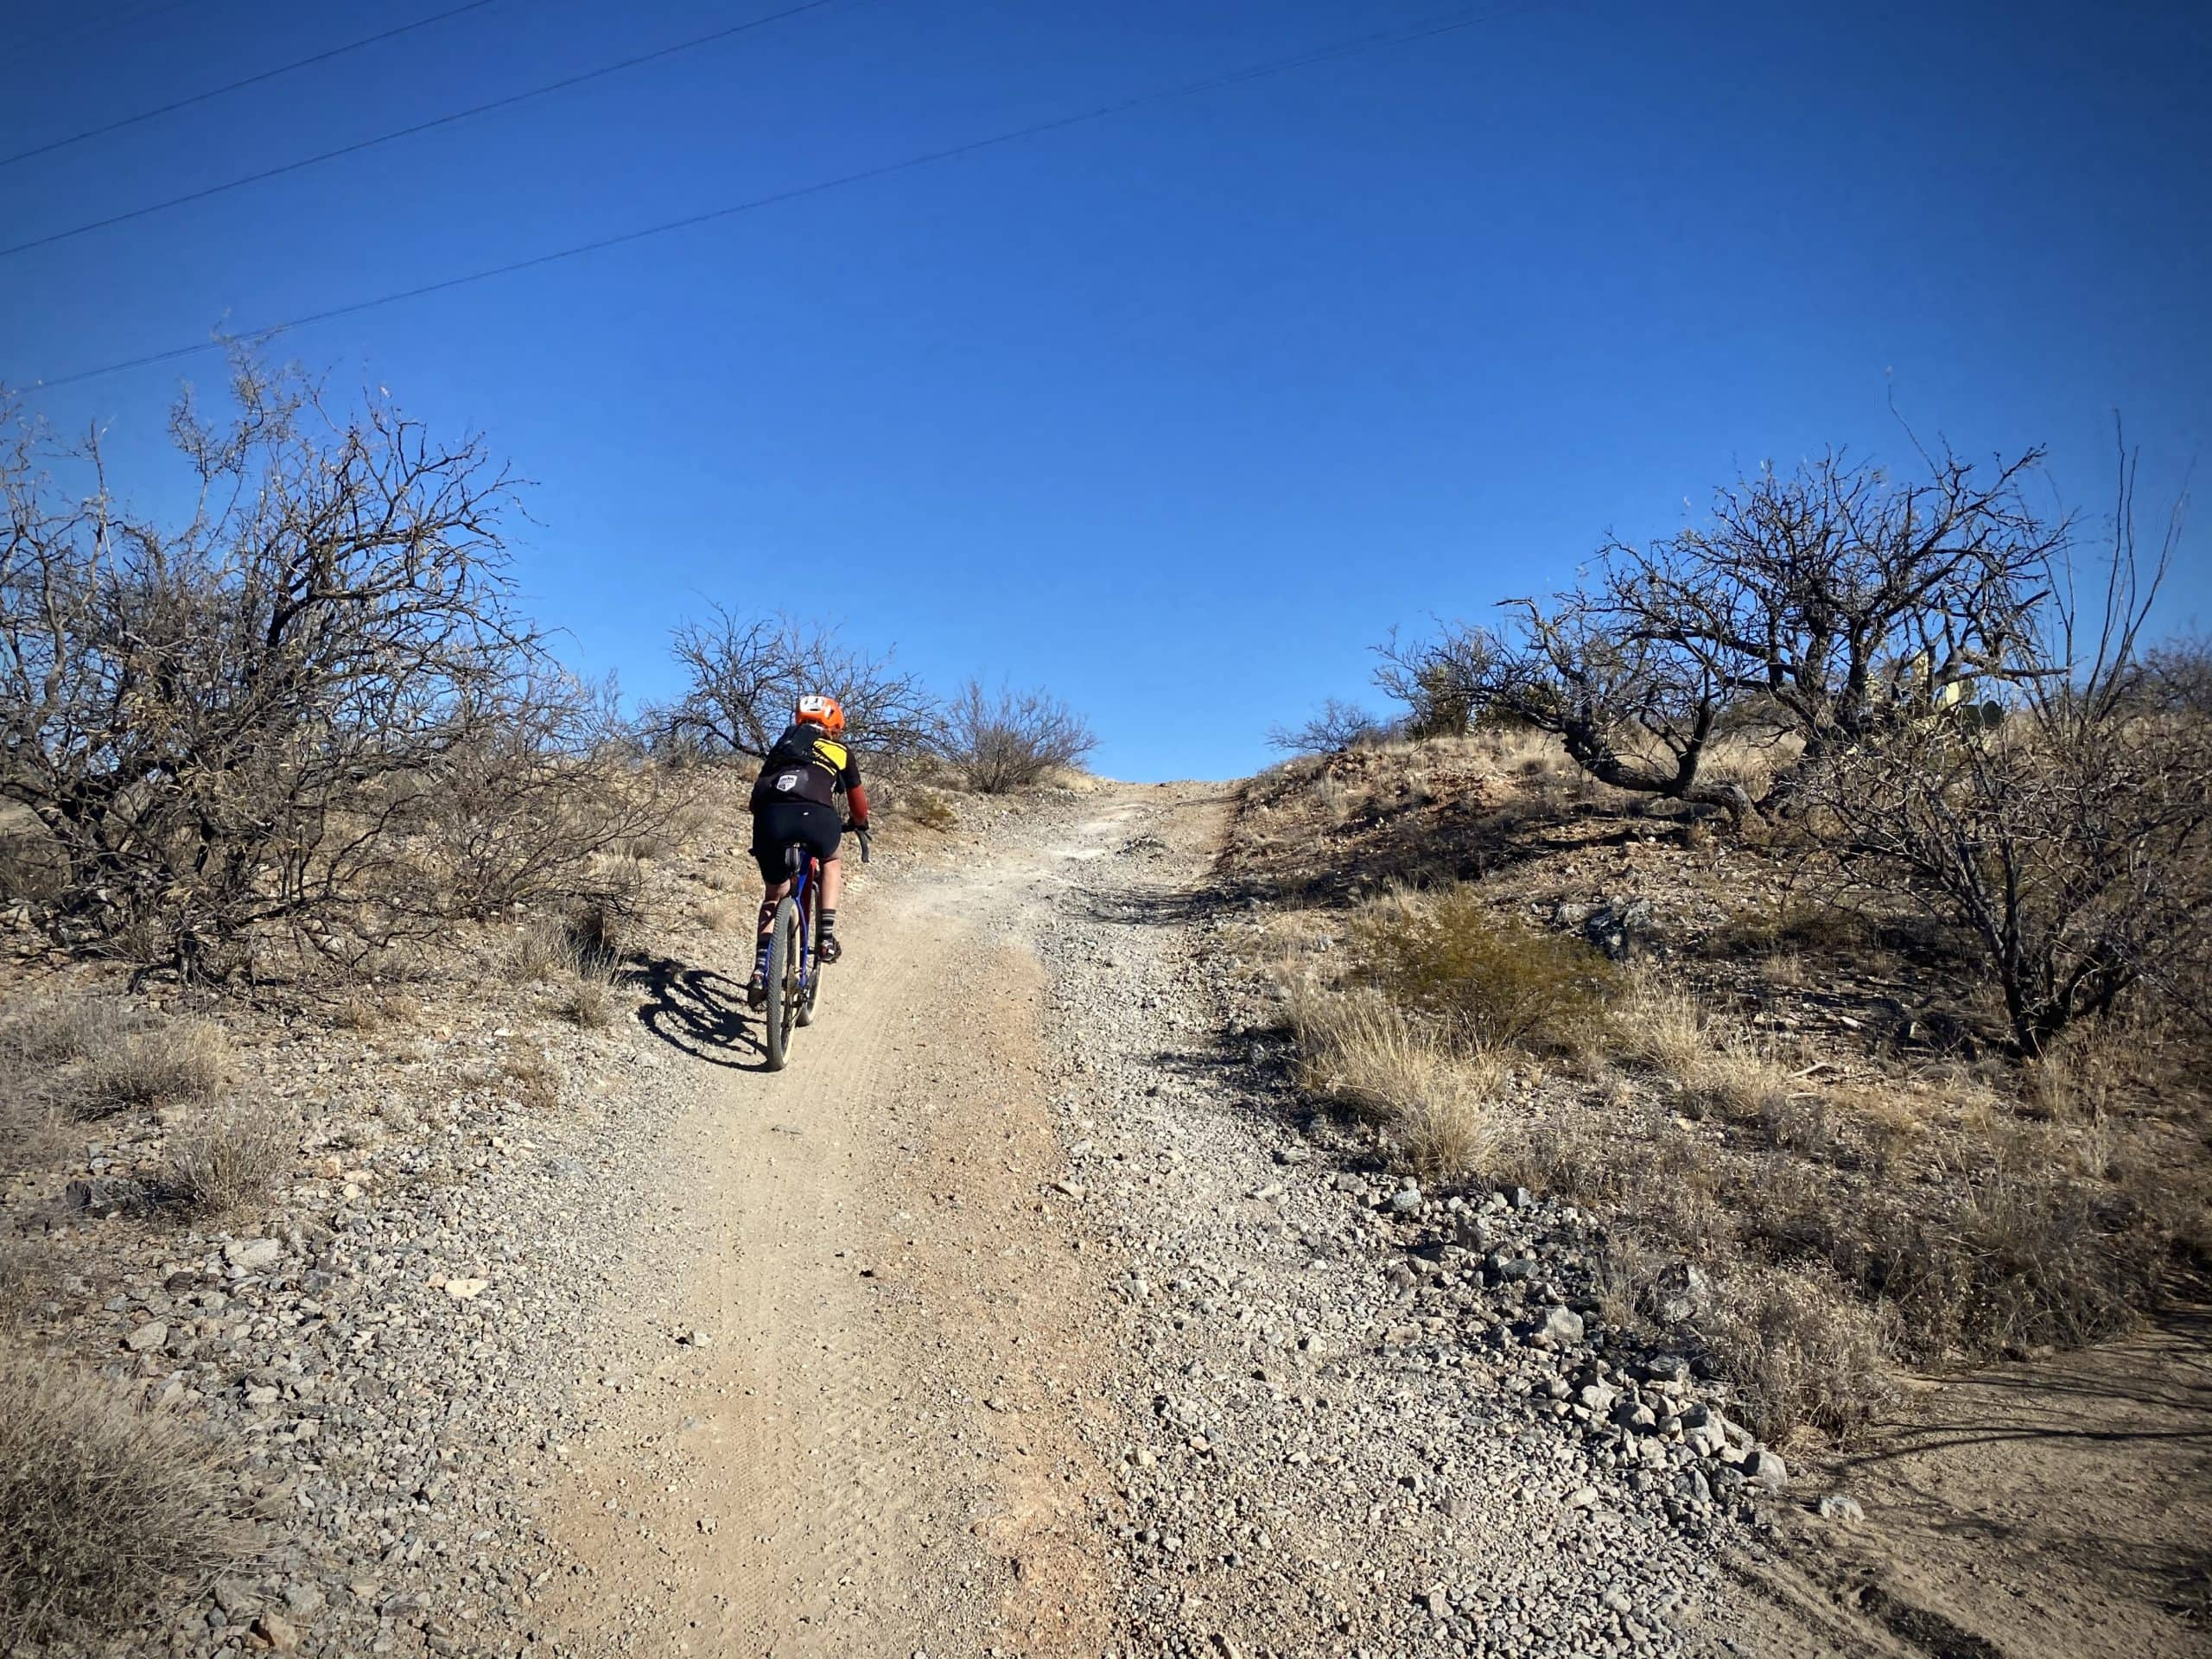 Cyclist climbing loose, gnarly dirt road south of Tucson.